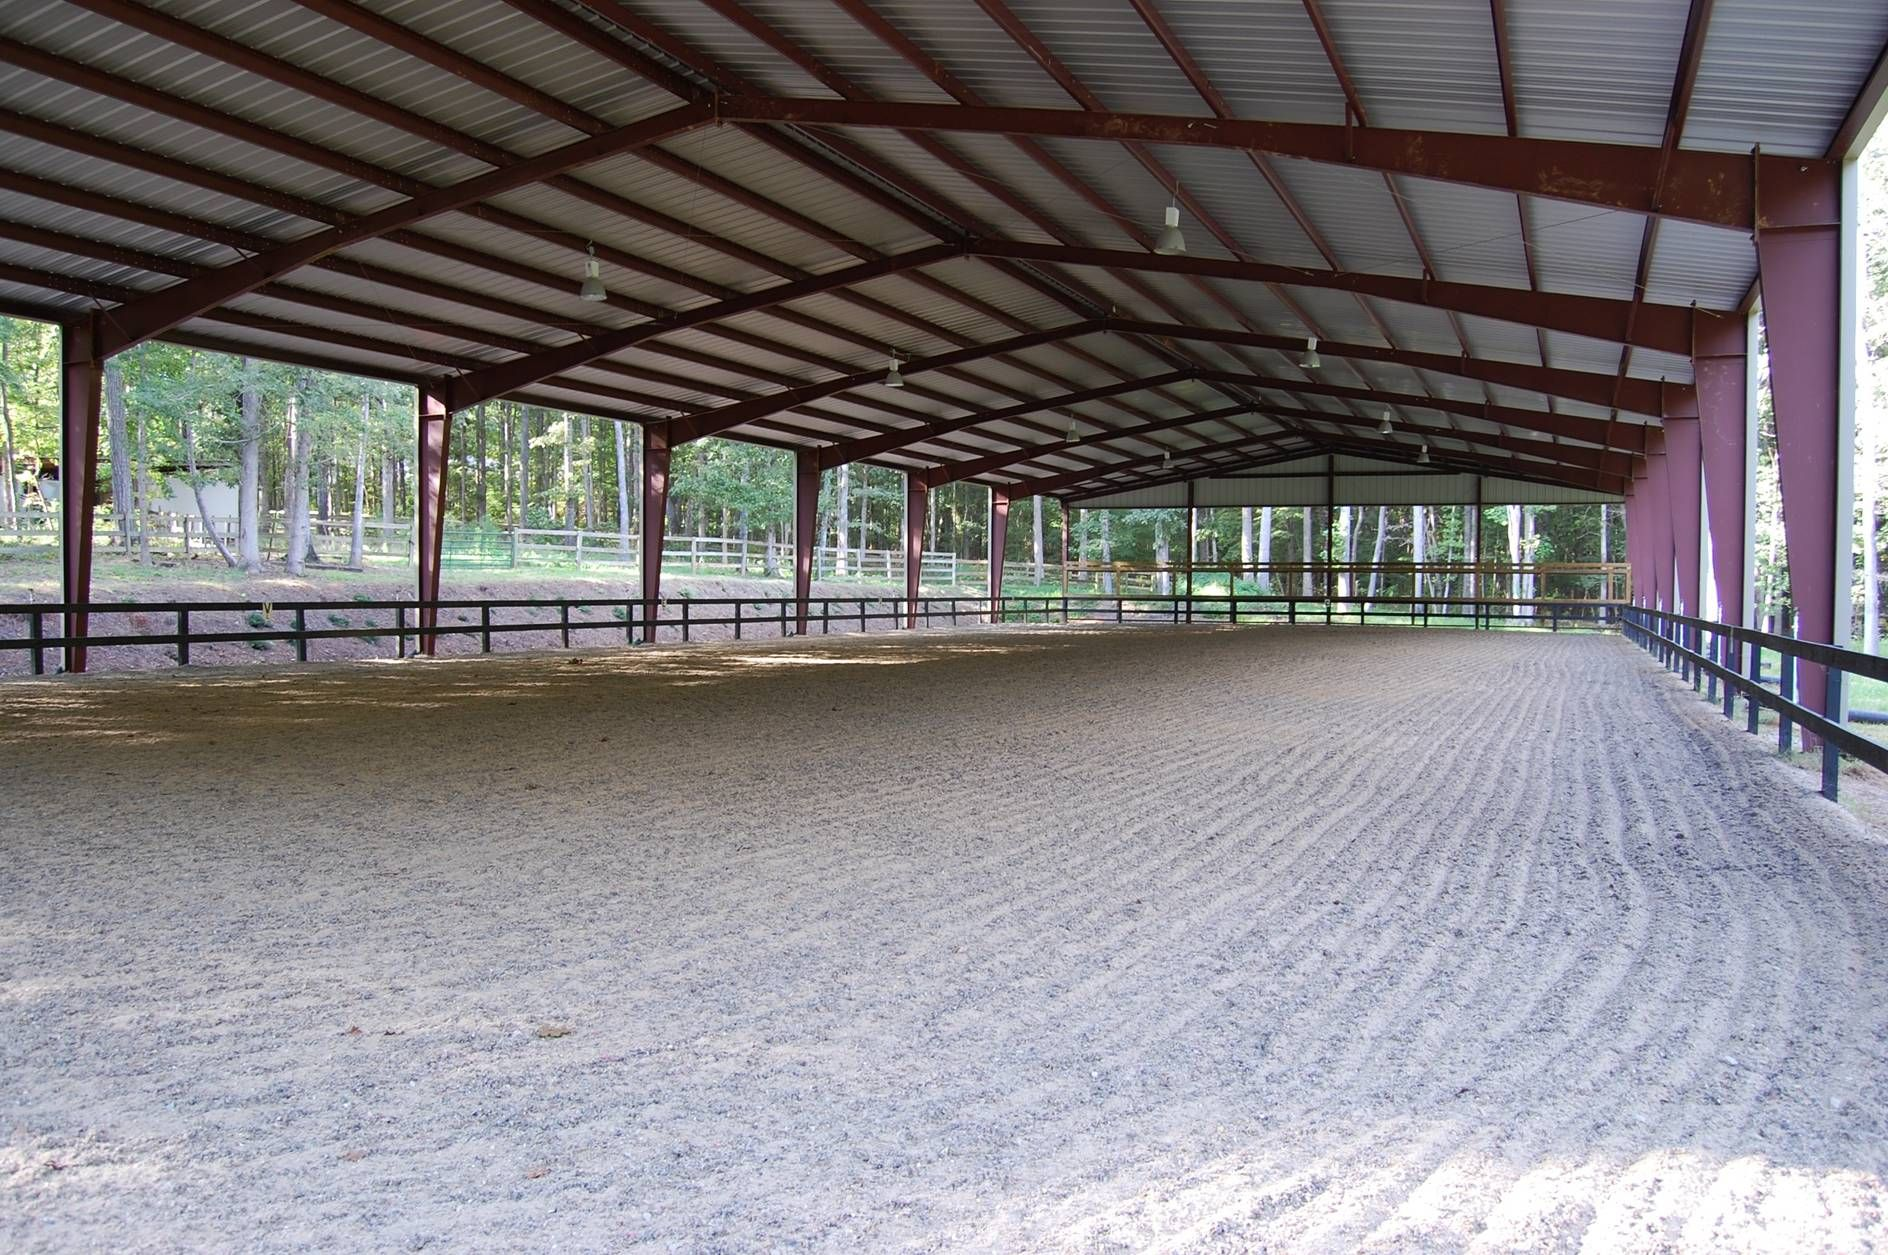 Metal Building Covered Riding Arena Covered Riding Arena Indoor Horse Riding Arena Riding Arenas